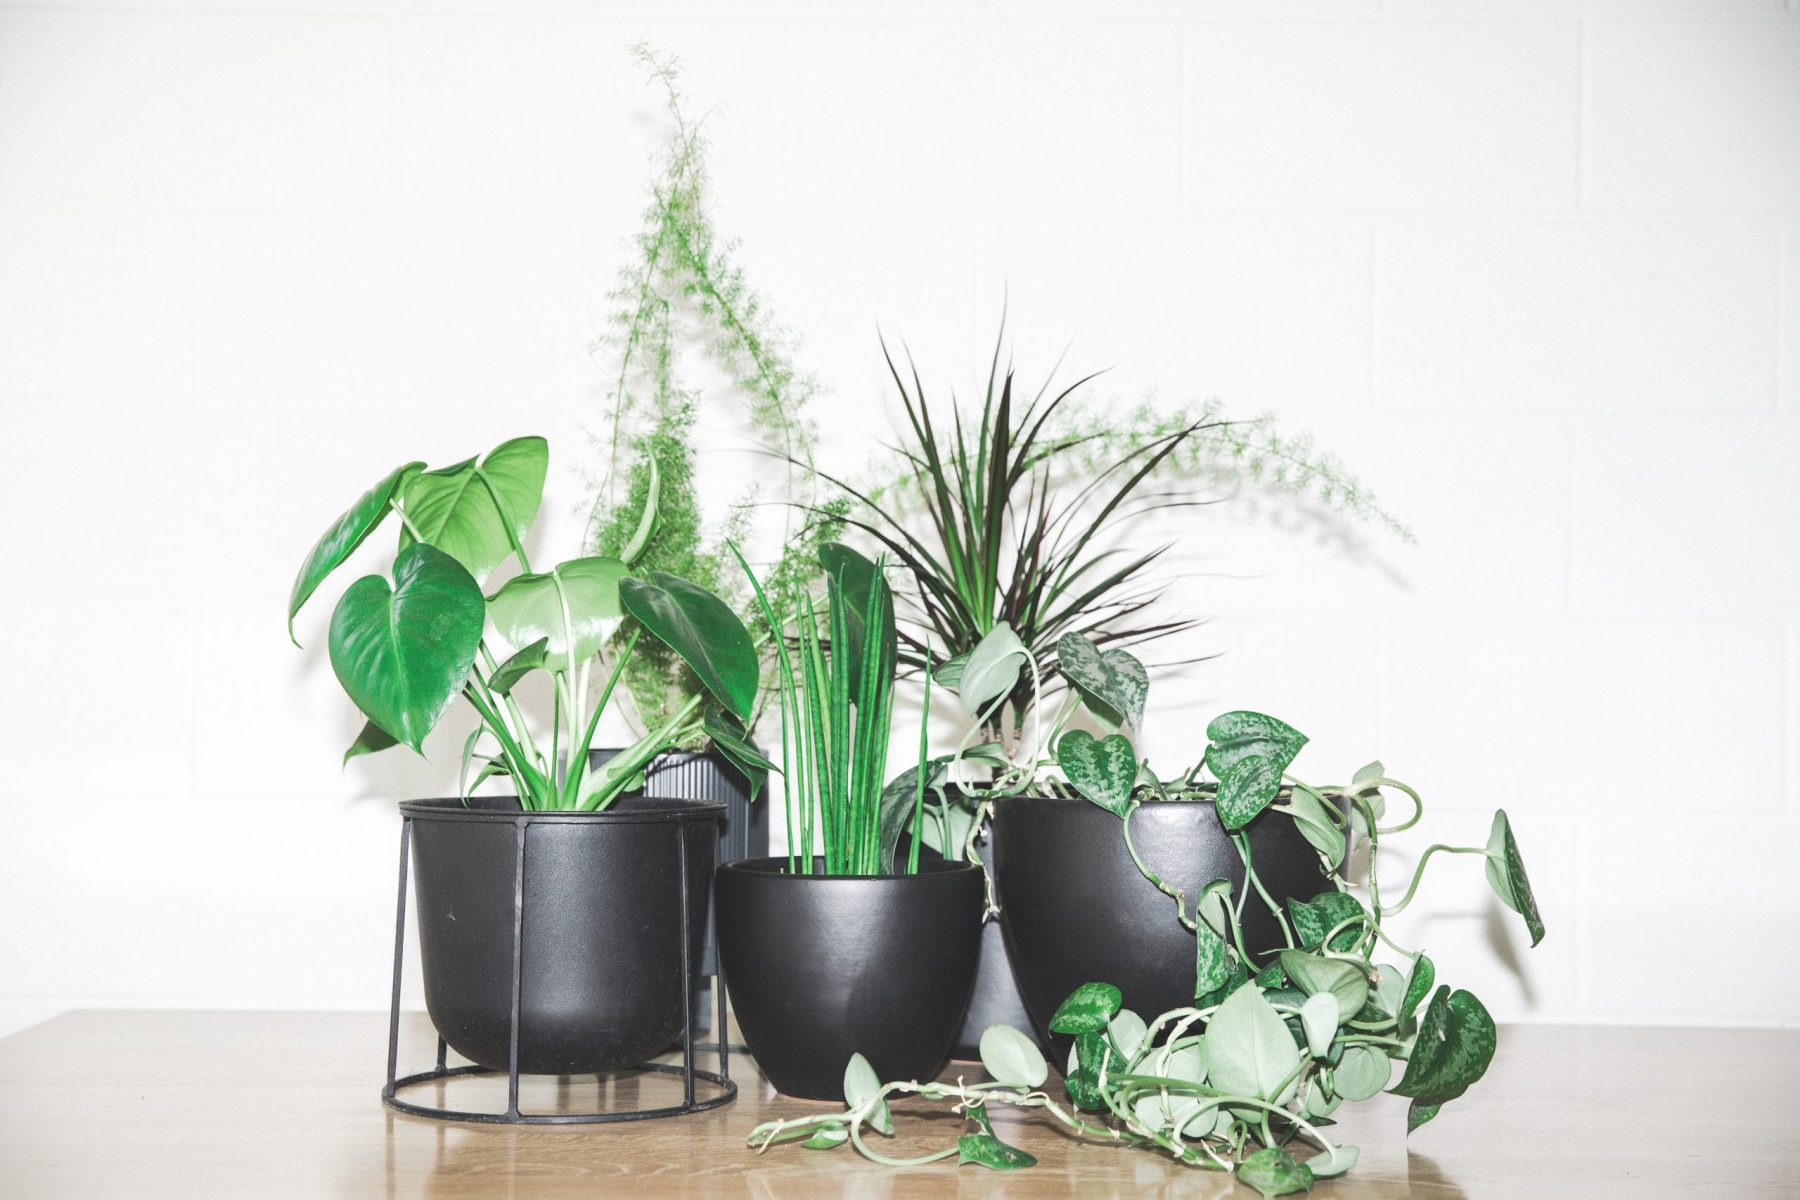 33 Recommends: Top 5 House Plants